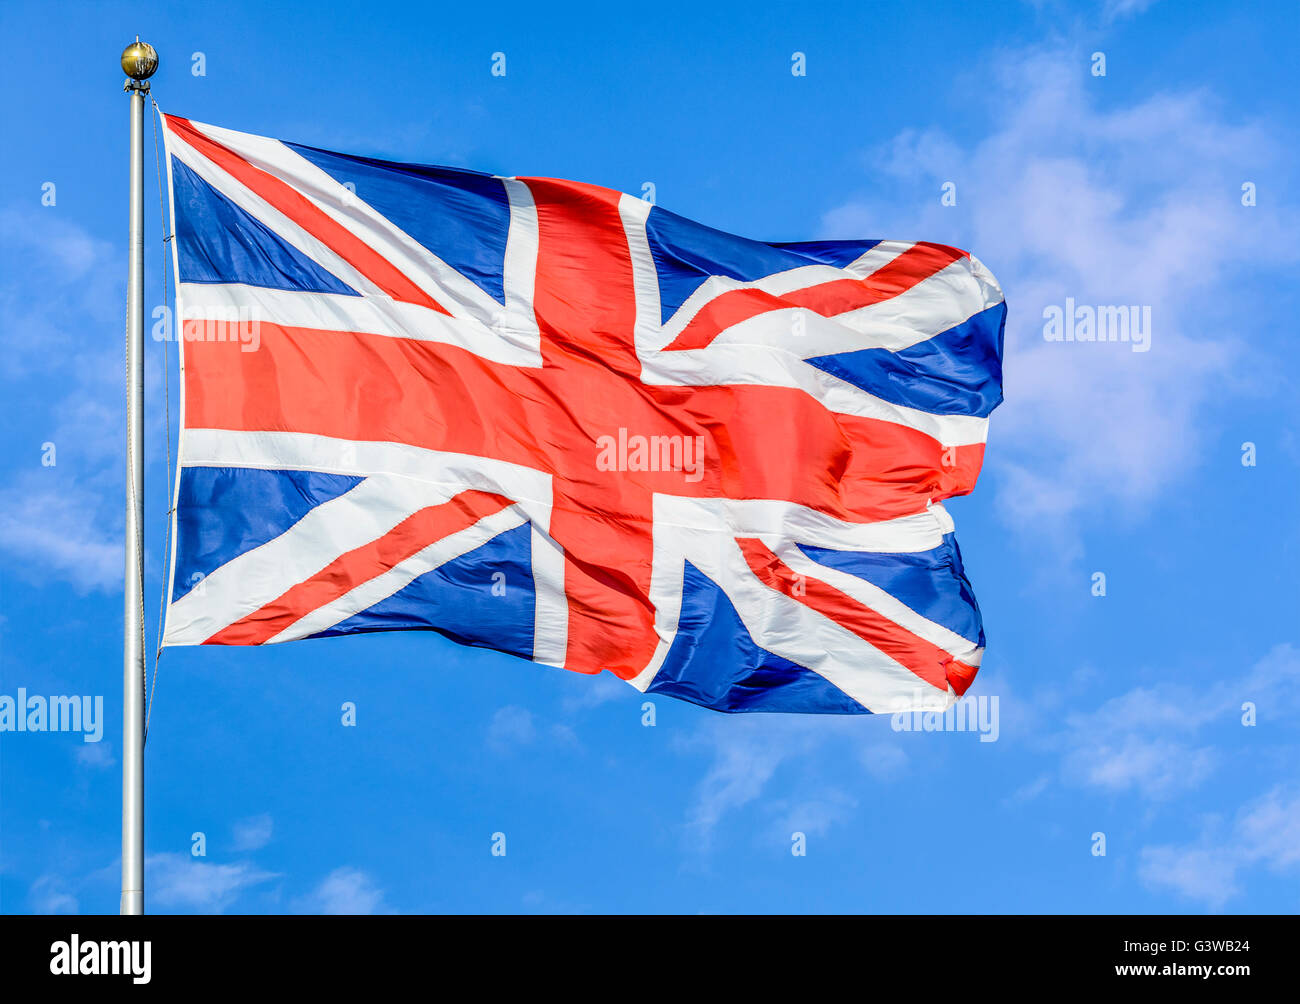 Union Jack flag of United Kingdom of Great Britain and Northern Ireland, flying on a pole against blue sky. - Stock Image